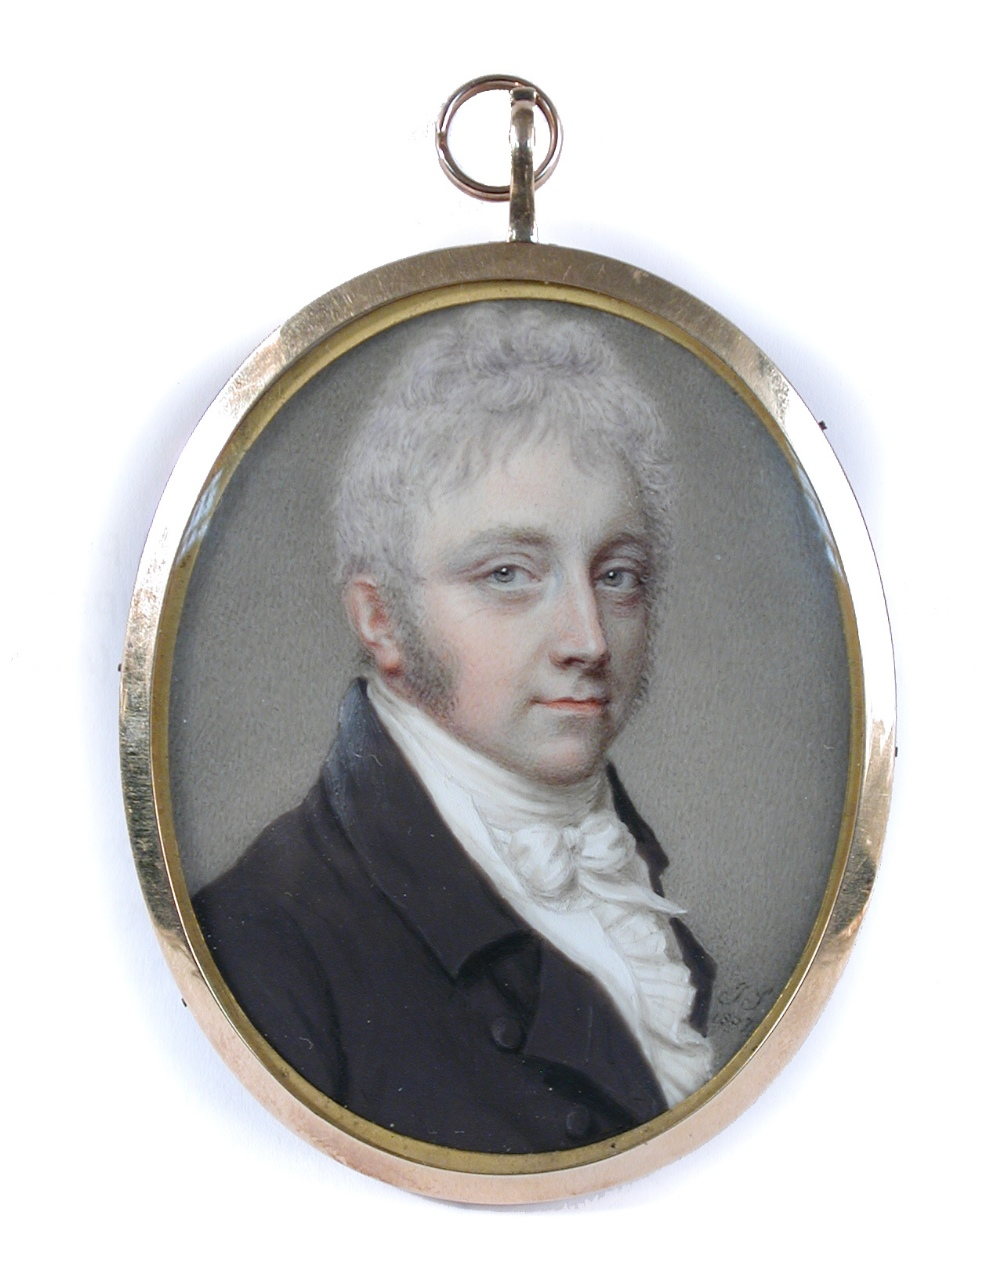 Lot 474 - John Smart (British, 1741-1811) Portrait miniature of a Gentleman, traditionally thought to be